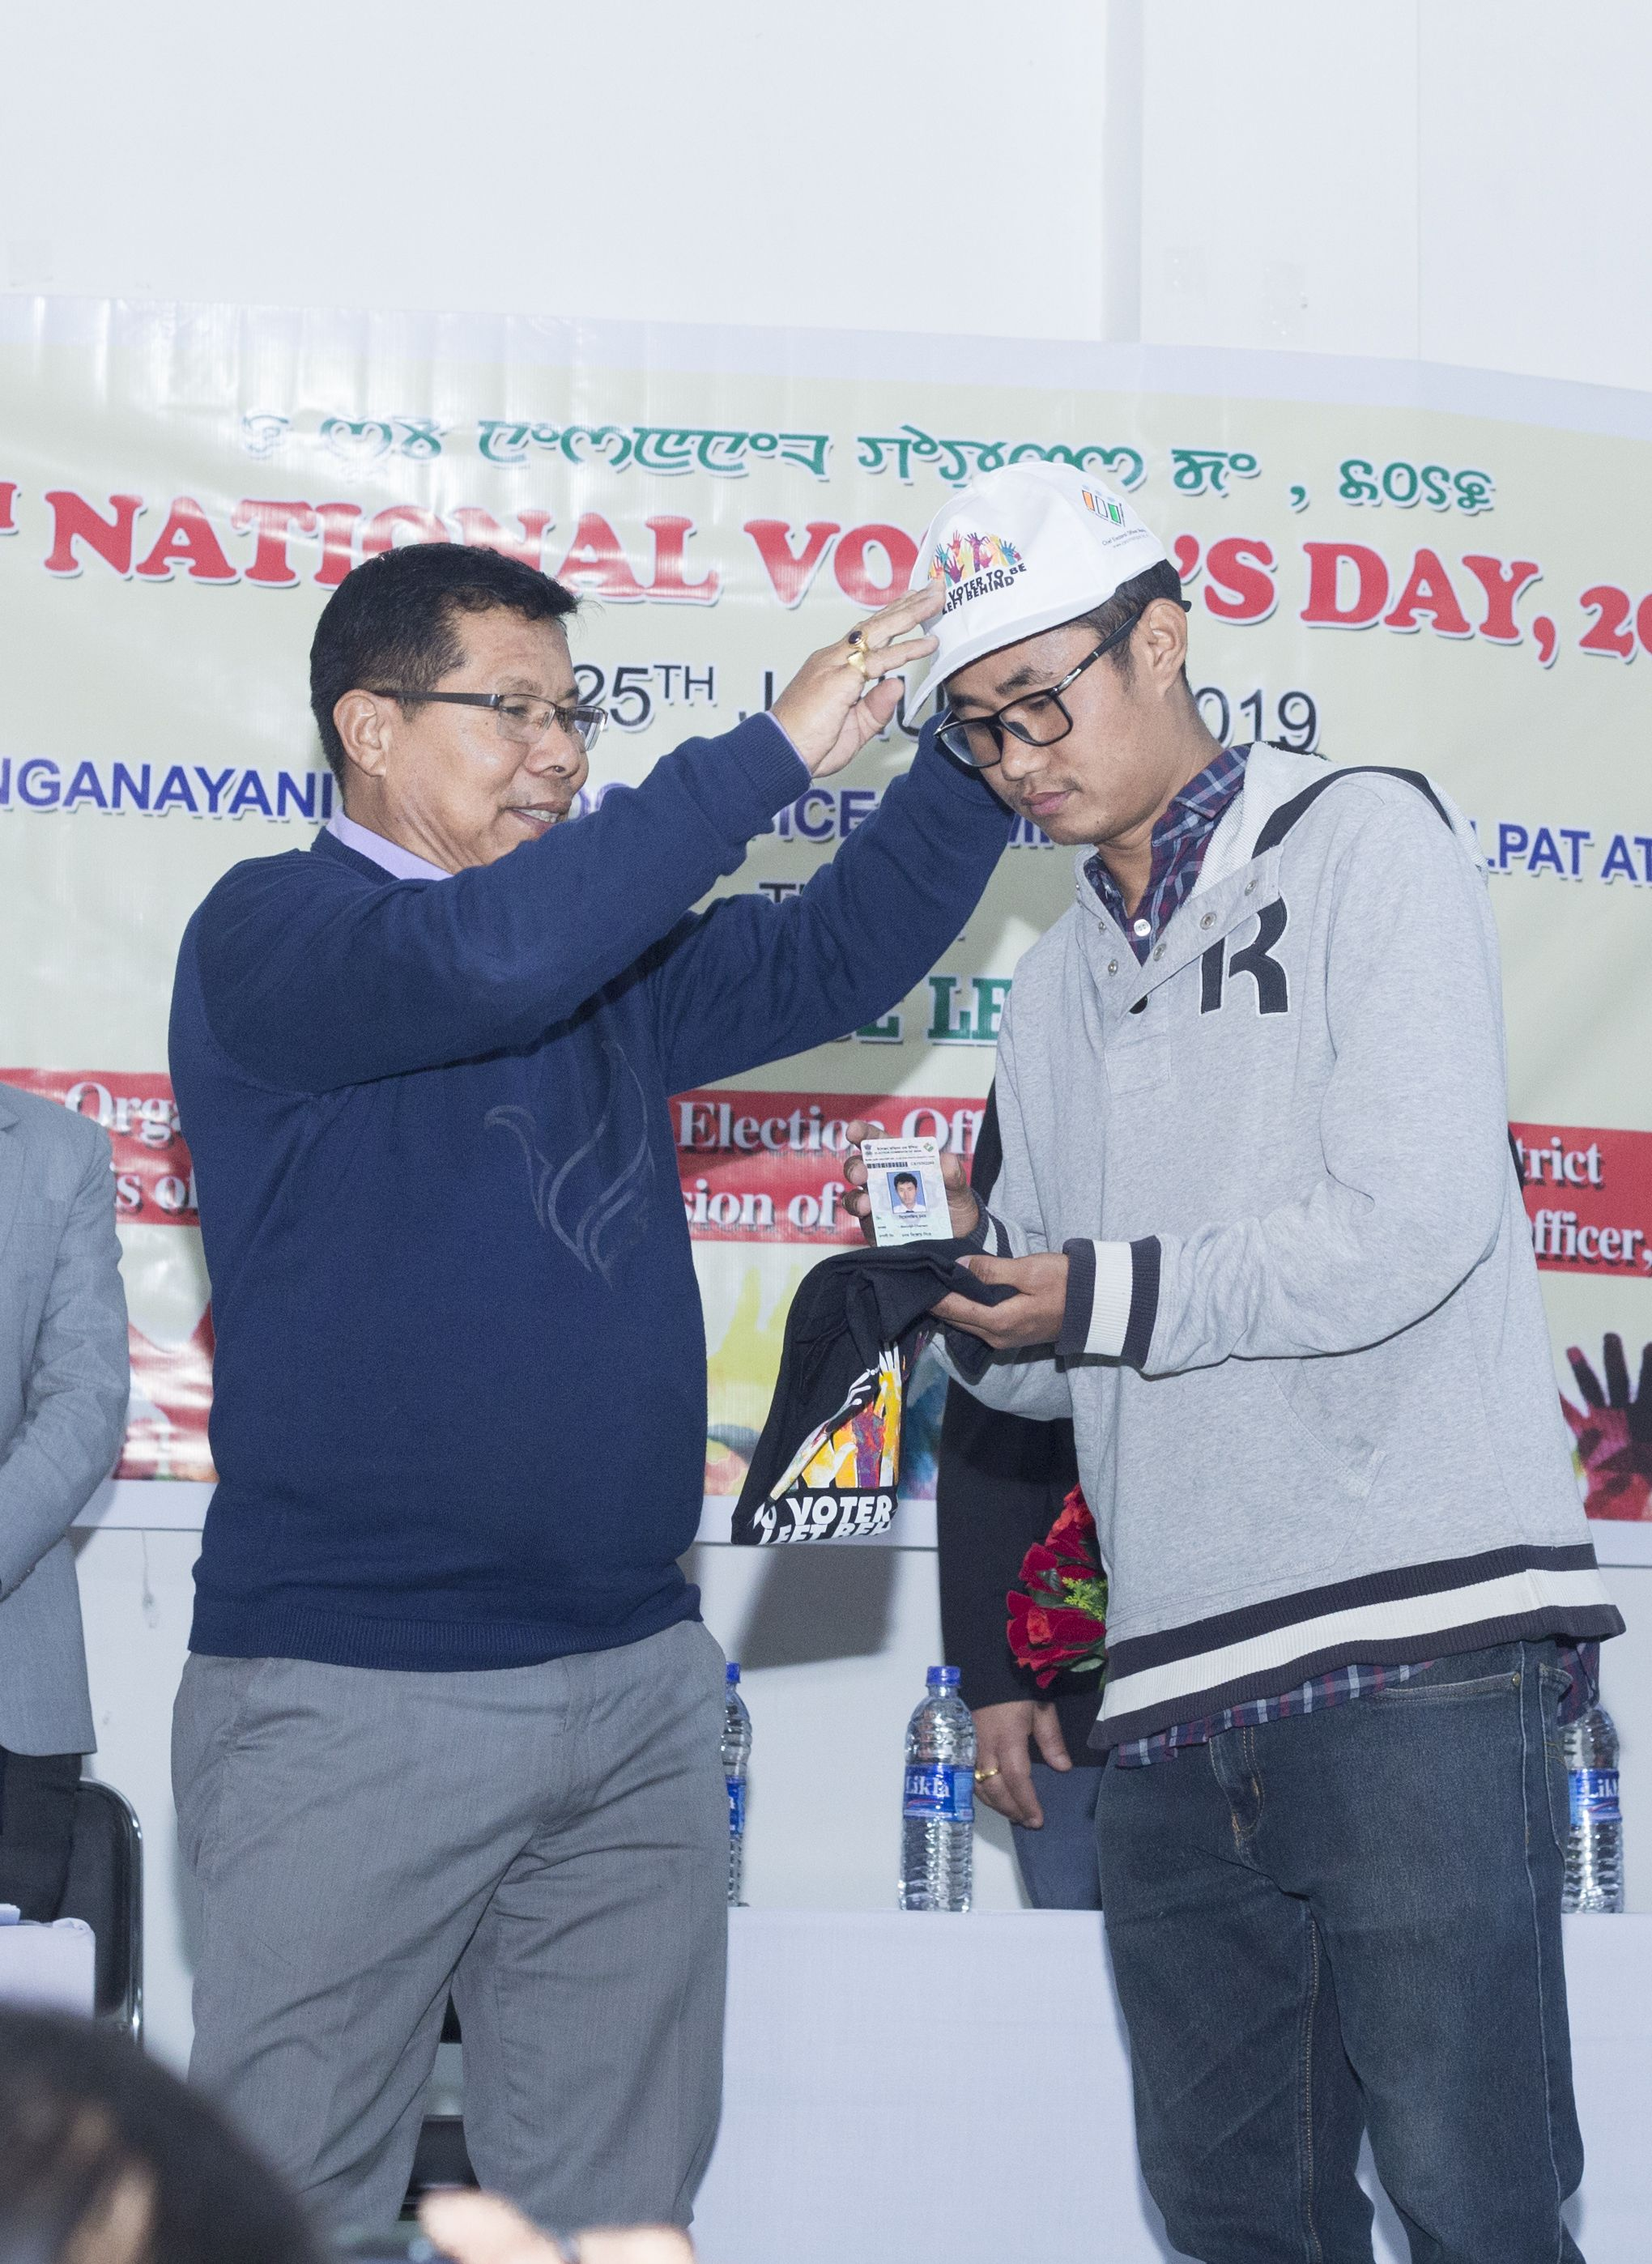 Distribution of EPIC, NVD Cap & T-Shirt by ADM